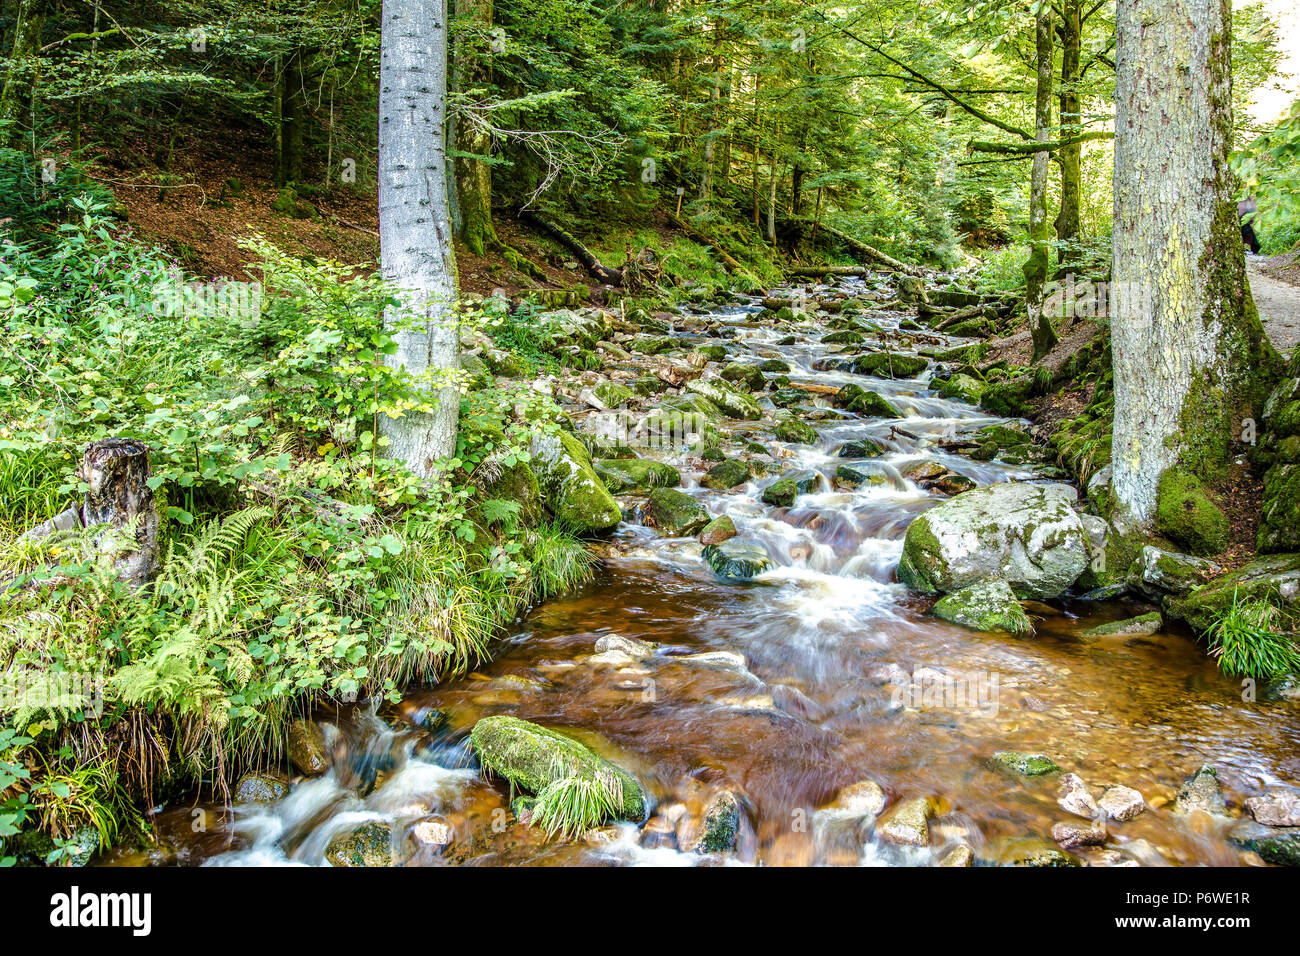 Rocky stream flowing through lush green woodland or forest in an alpine creek in a low angle view of the flowing water Stock Photo